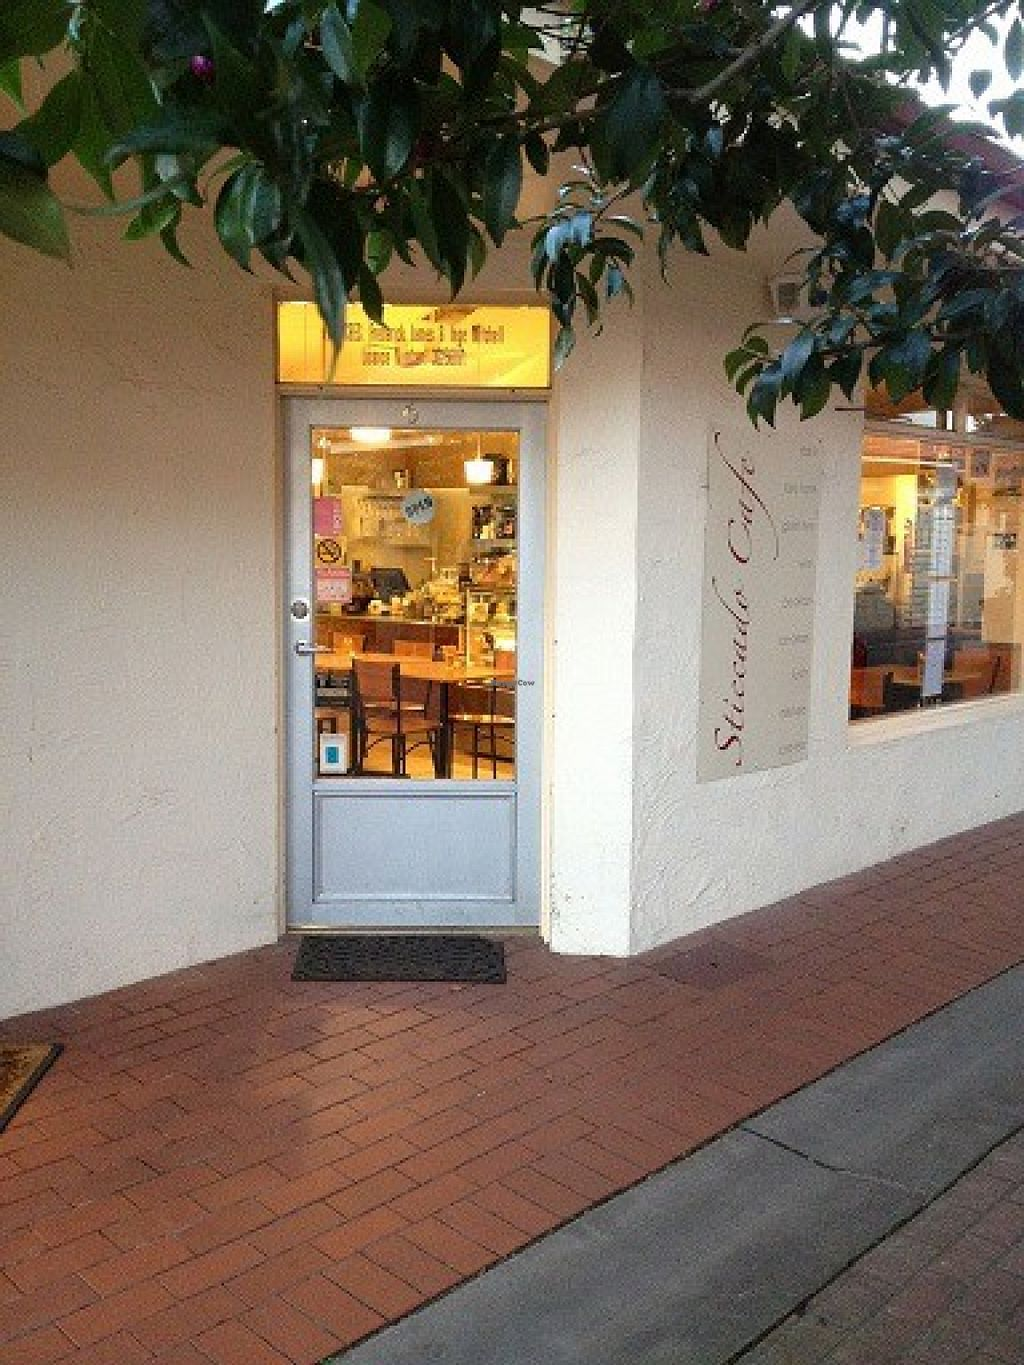 "Photo of Sticcado Cafe  by <a href=""/members/profile/community"">community</a> <br/> Sticcado Cafe <br/> October 28, 2015  - <a href='/contact/abuse/image/64578/123053'>Report</a>"